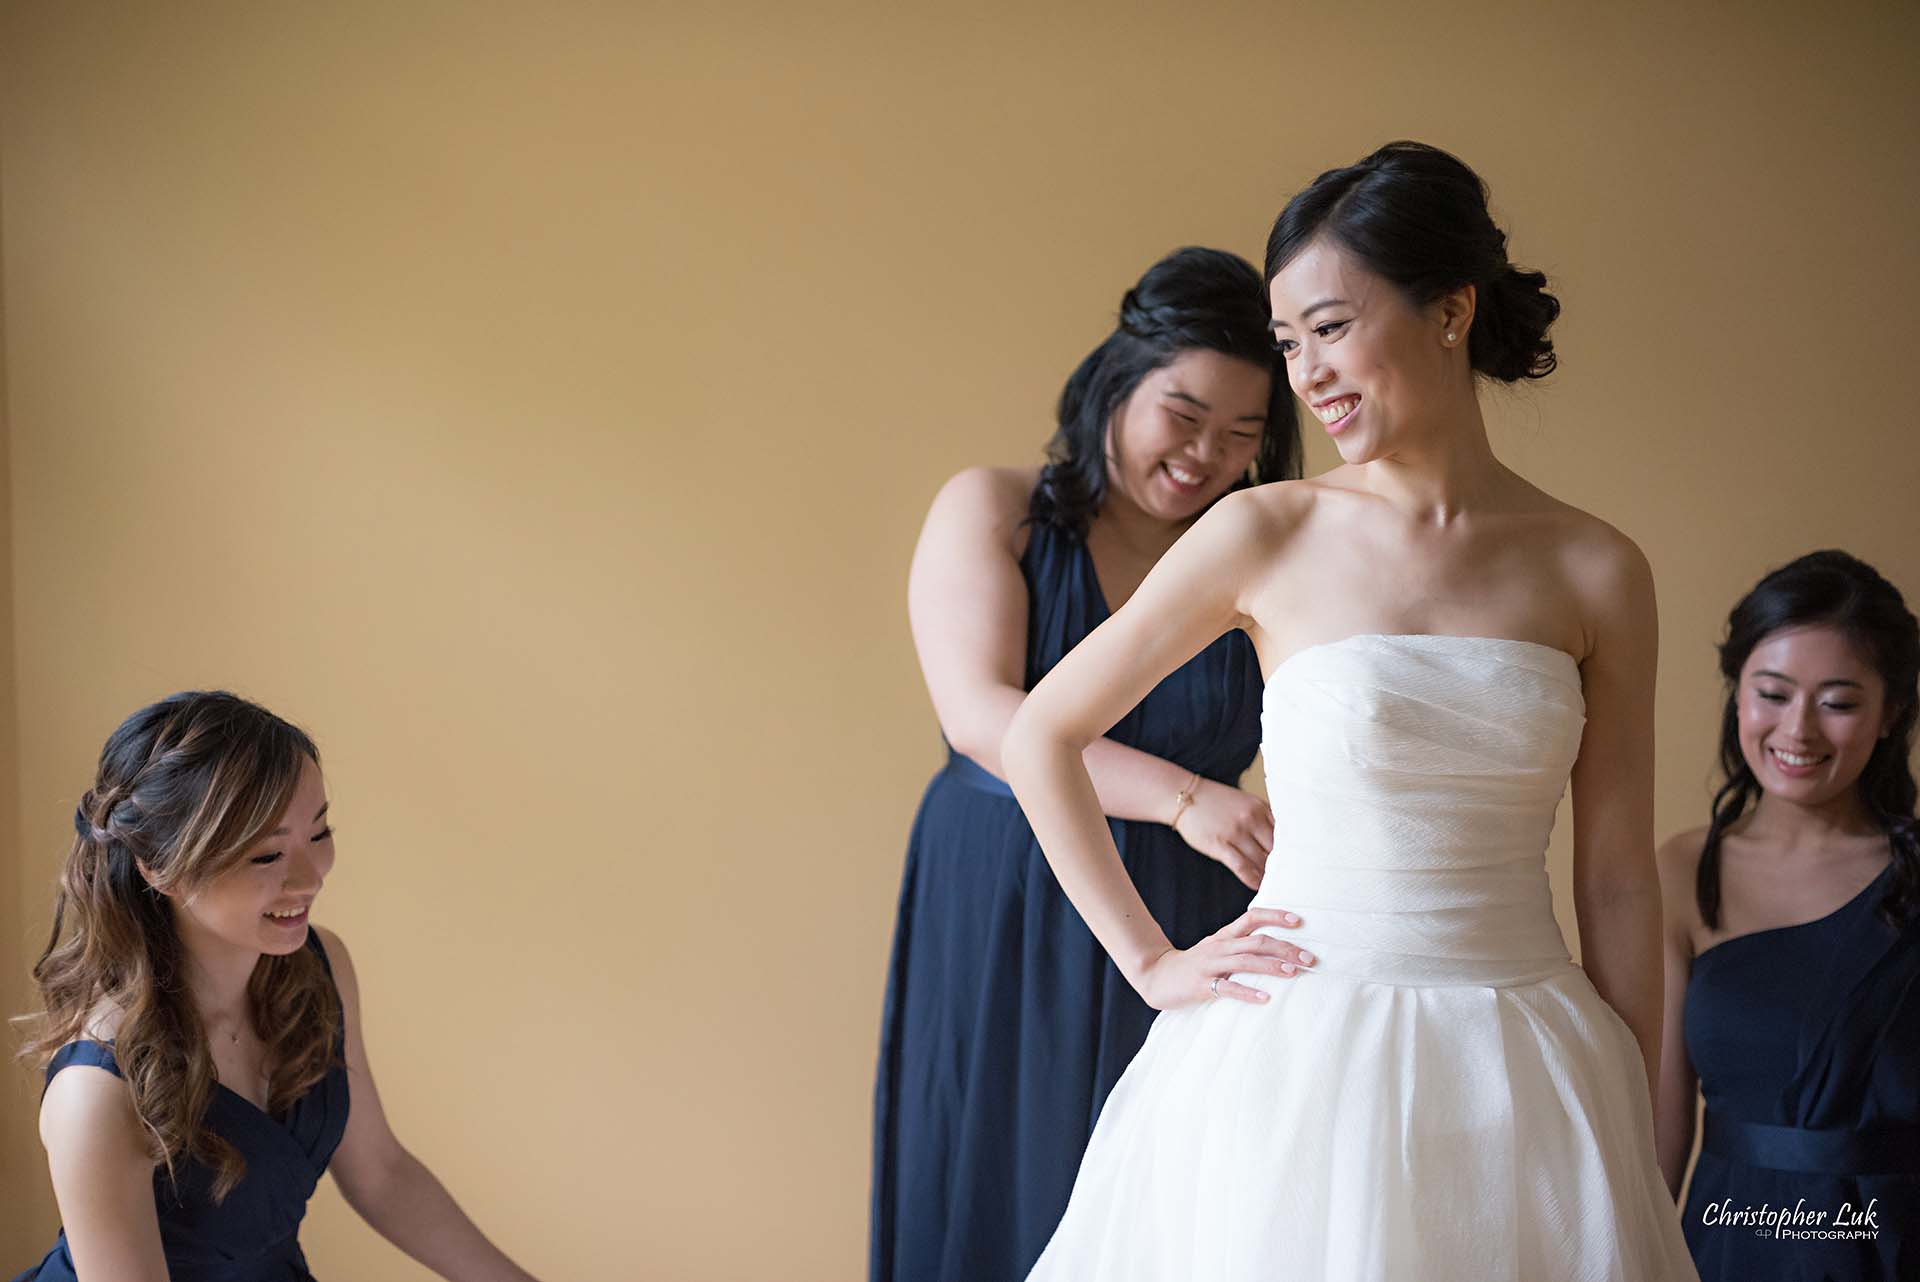 Christopher Luk Toronto Wedding Photographer Bride Getting Ready Preparations Bridal White Gown Dress Maid of Honour Bridesmaids Landscape Detail